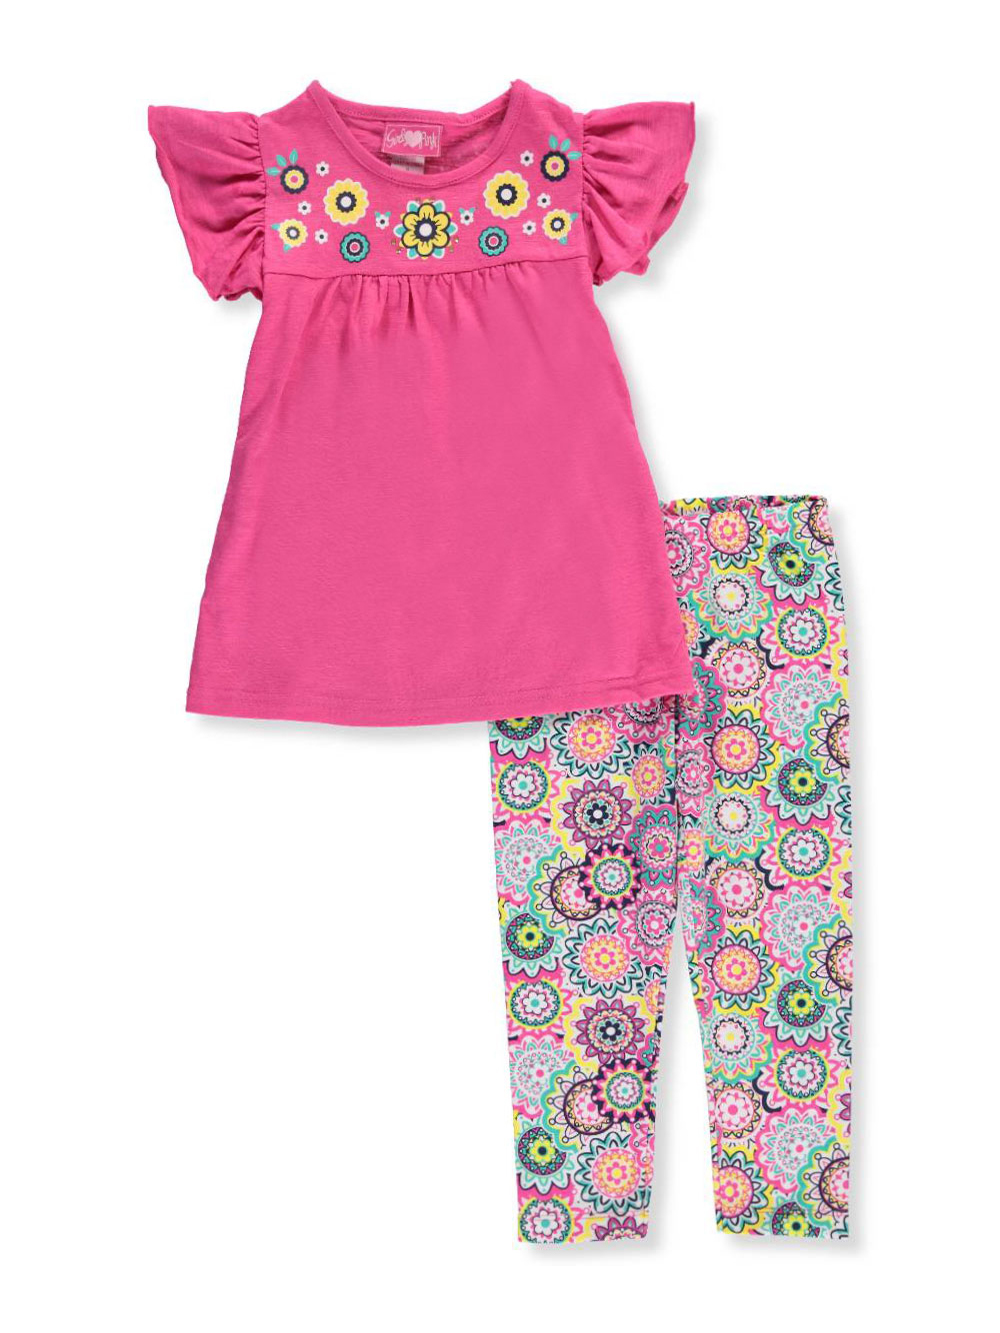 Girls Luv Pink Little Girls' 2-Piece Outfit (Sizes 4 – 6X) - CookiesKids.com